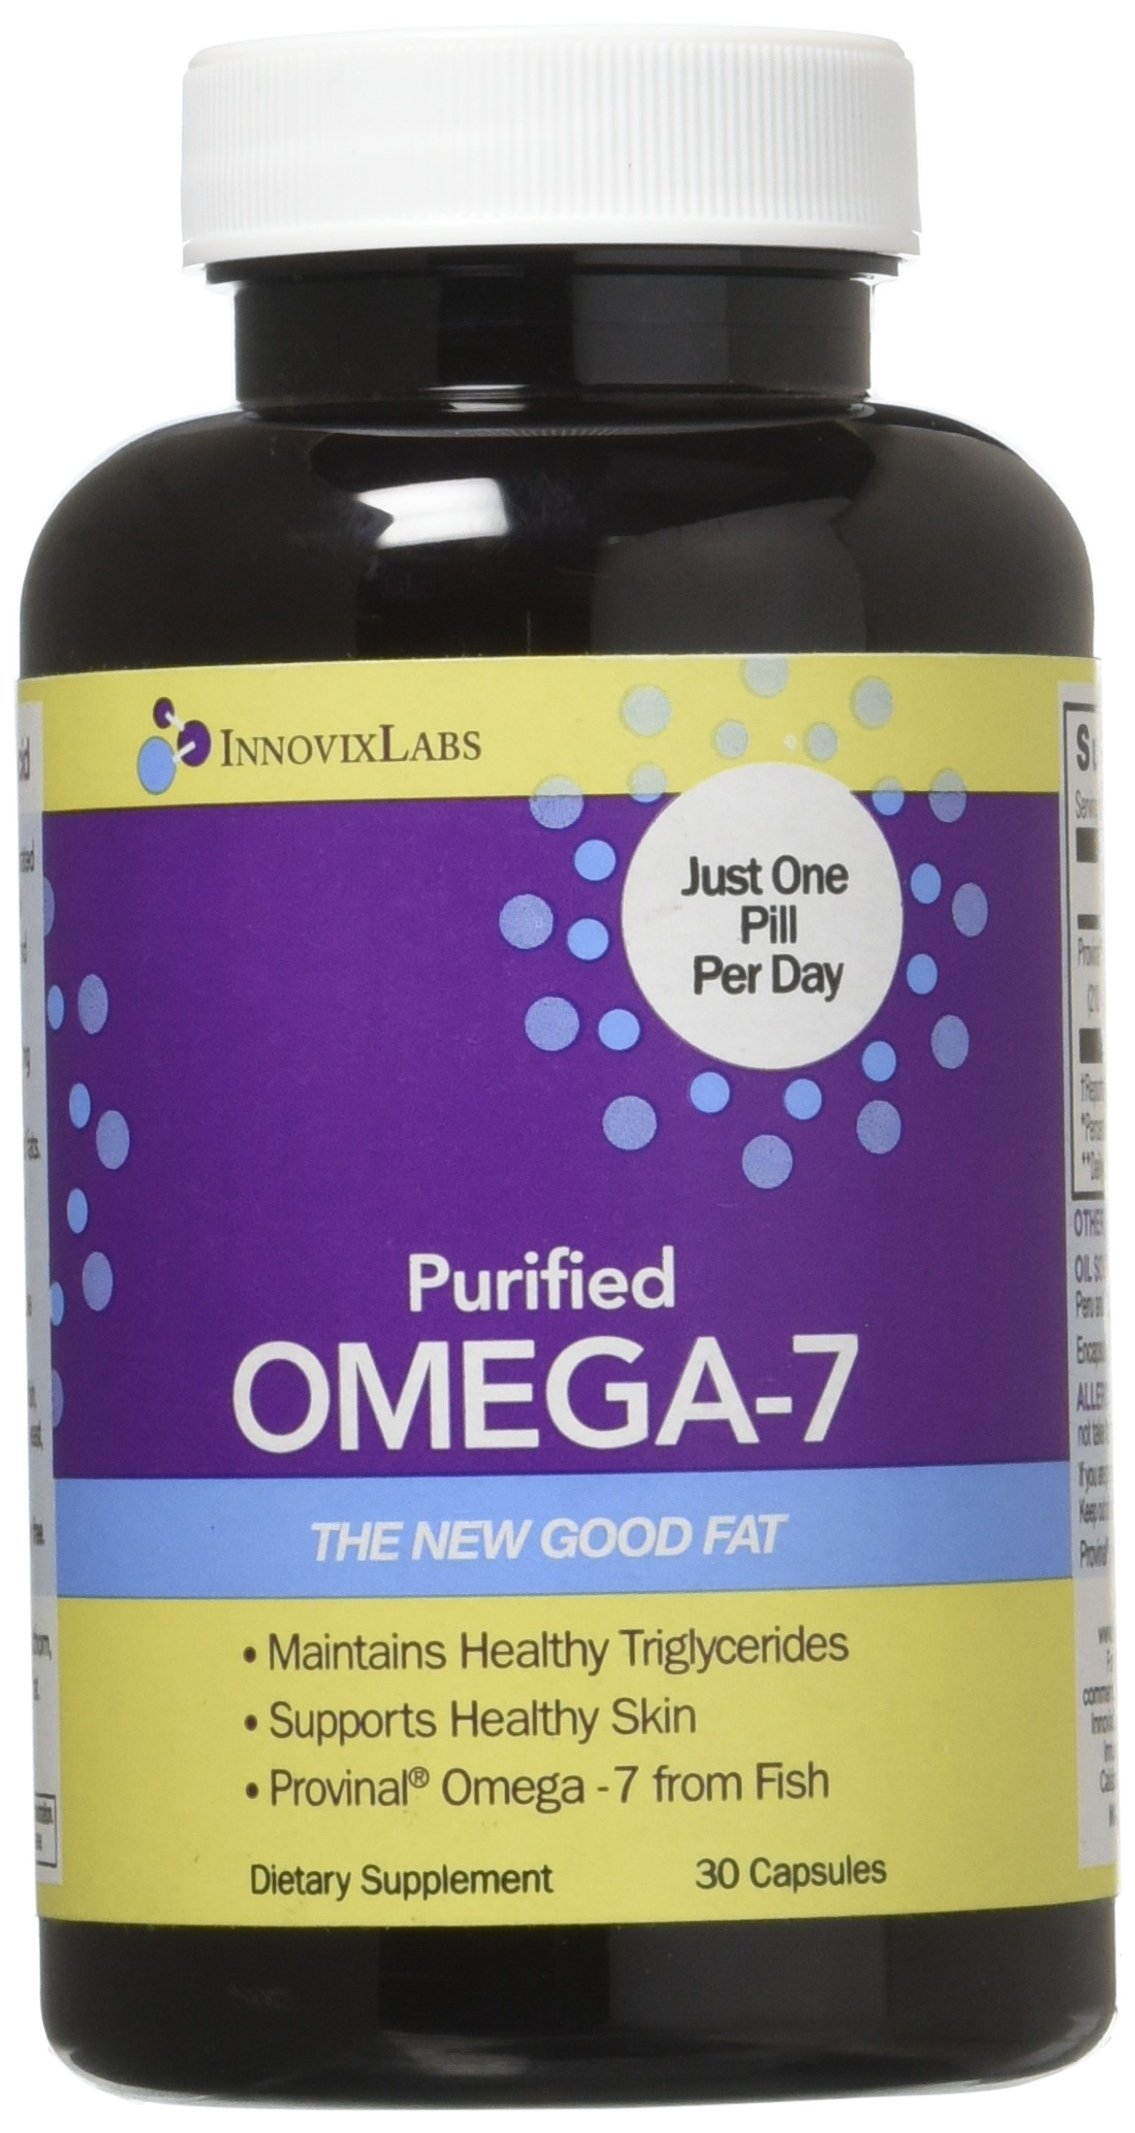 Purified OMEGA 7 (by InnovixLabs). The Healthy Fat in Fish and Macadamia. 210 mg Palmitoleic Acid Triglyceride-form Omega-7 per Pill. 30 Capsules (1 Month Supply).